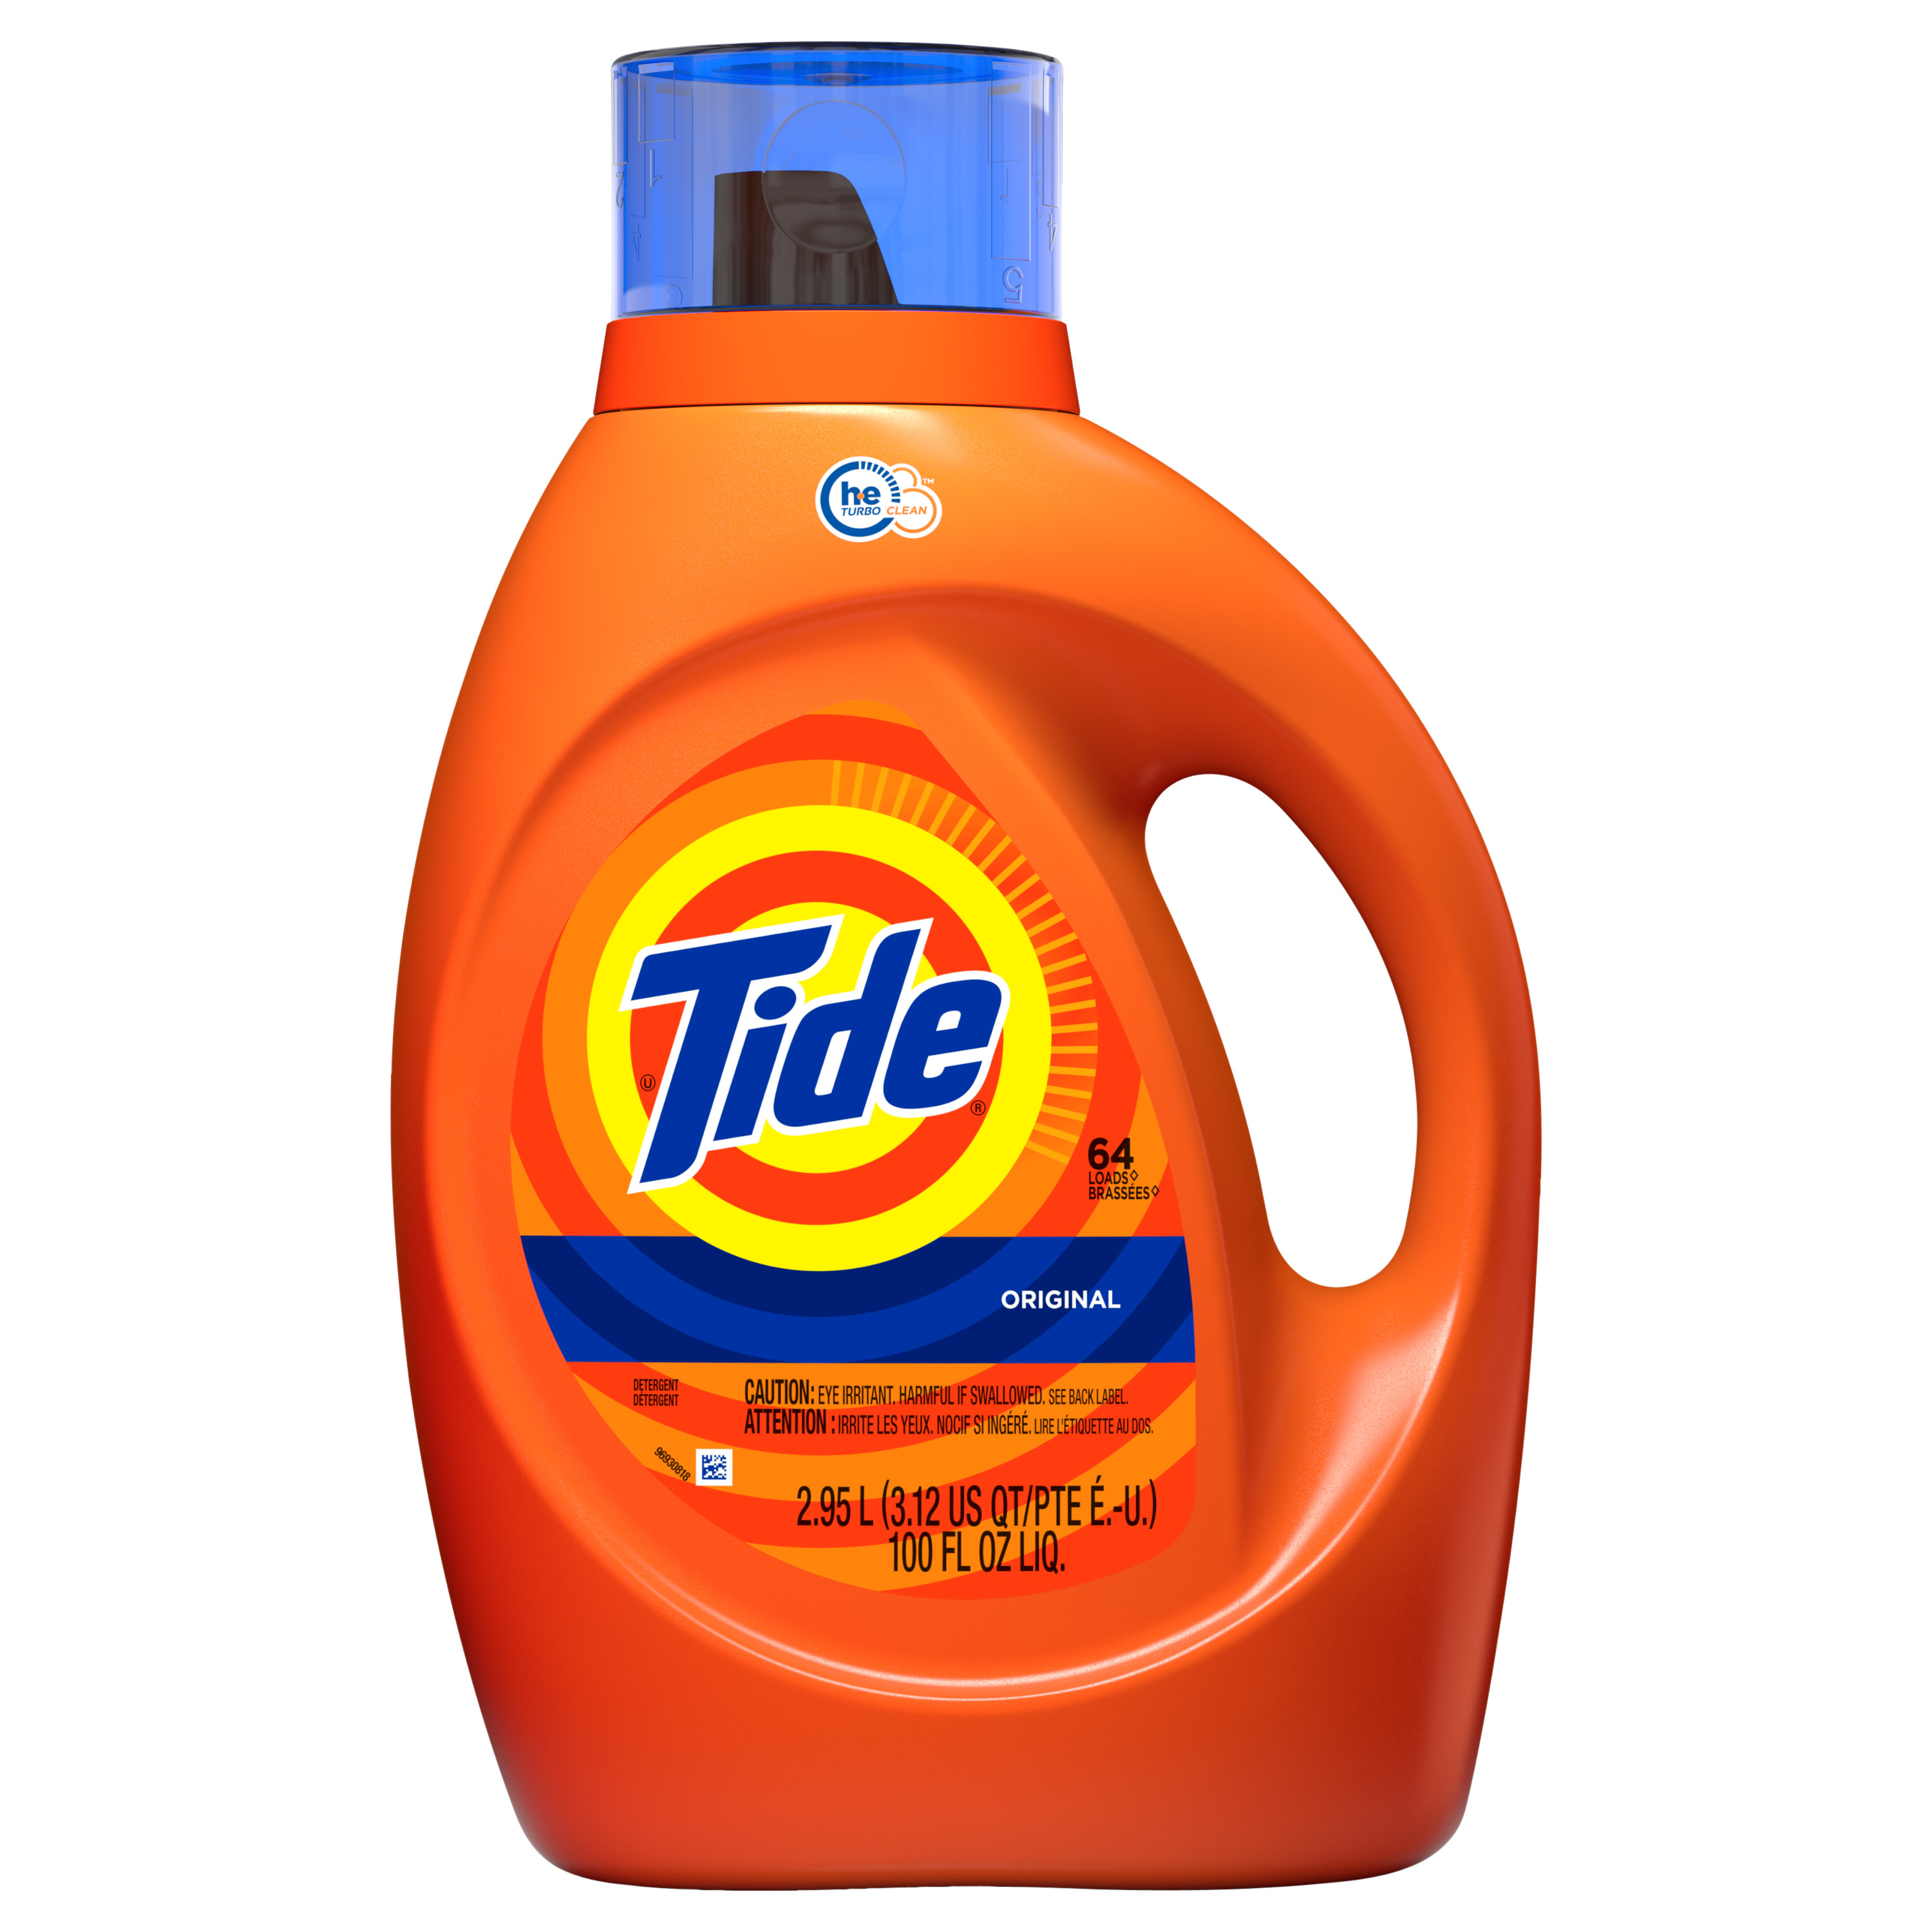 Tide Original Scent HE Turbo Clean Liquid Laundry Detergent, 64 loads, 2.95 L